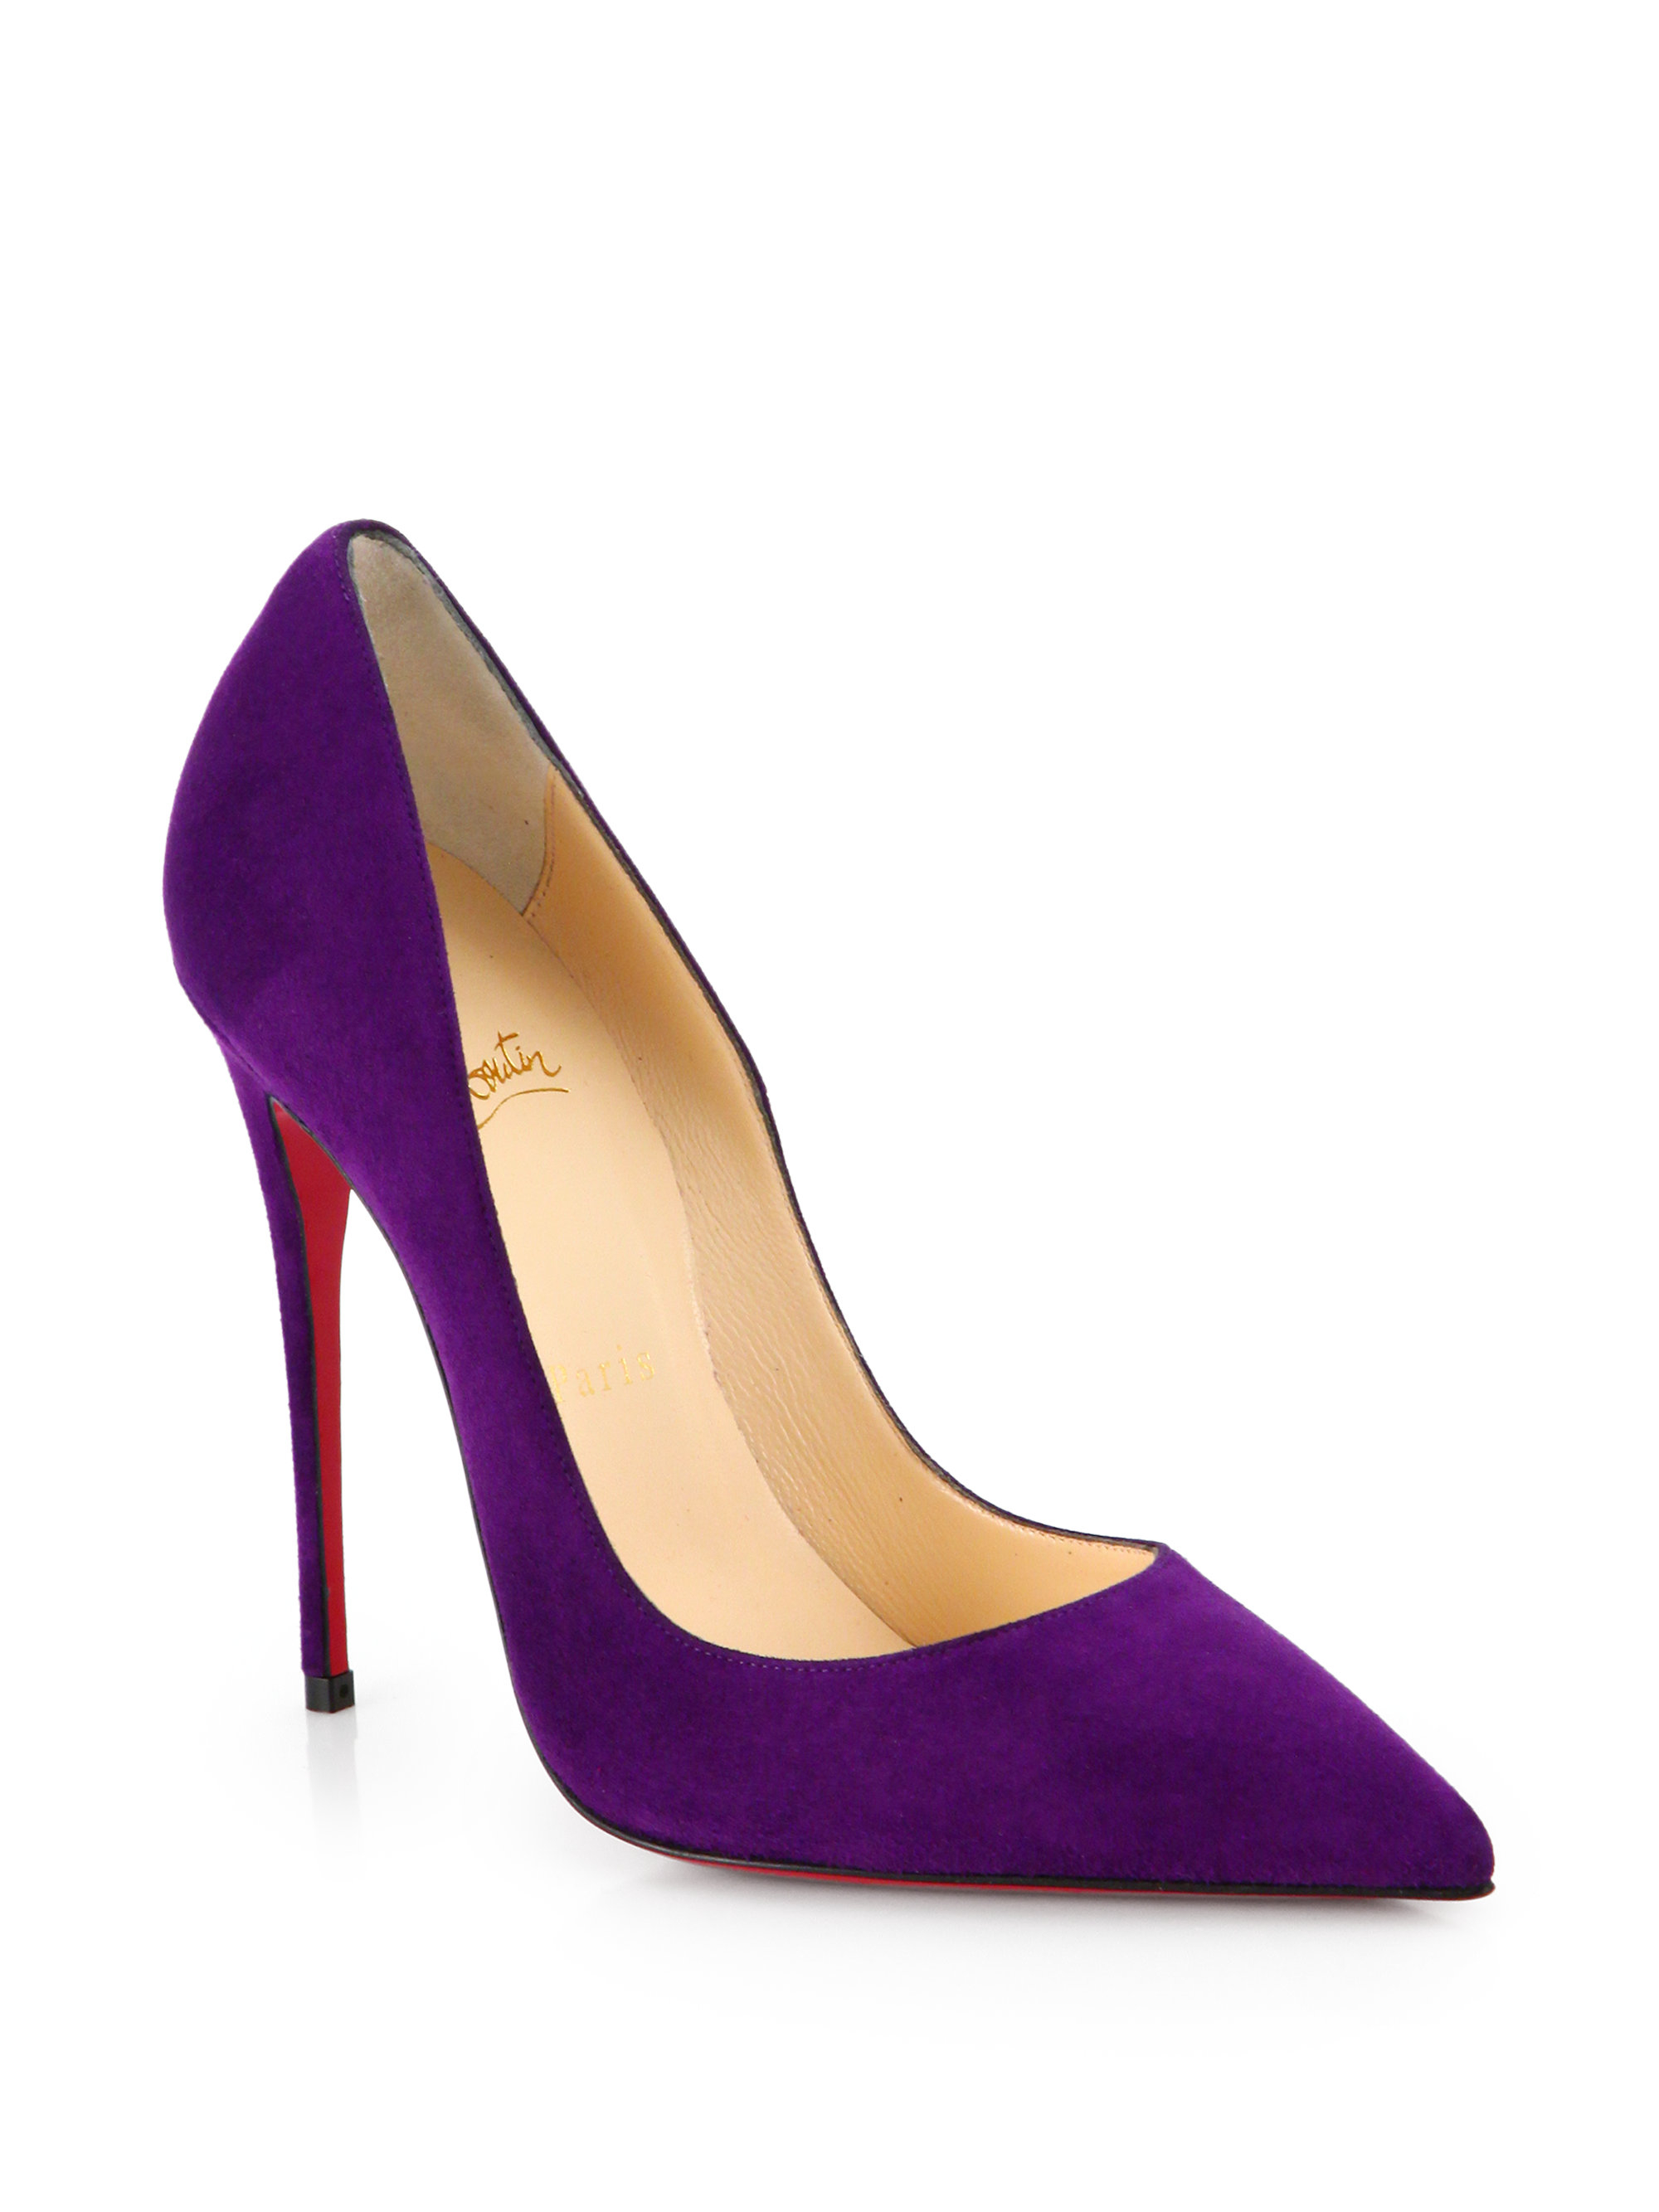 9f8c26ac9c45 Gallery. Previously sold at  Saks Fifth Avenue · Women s Christian  Louboutin So Kate